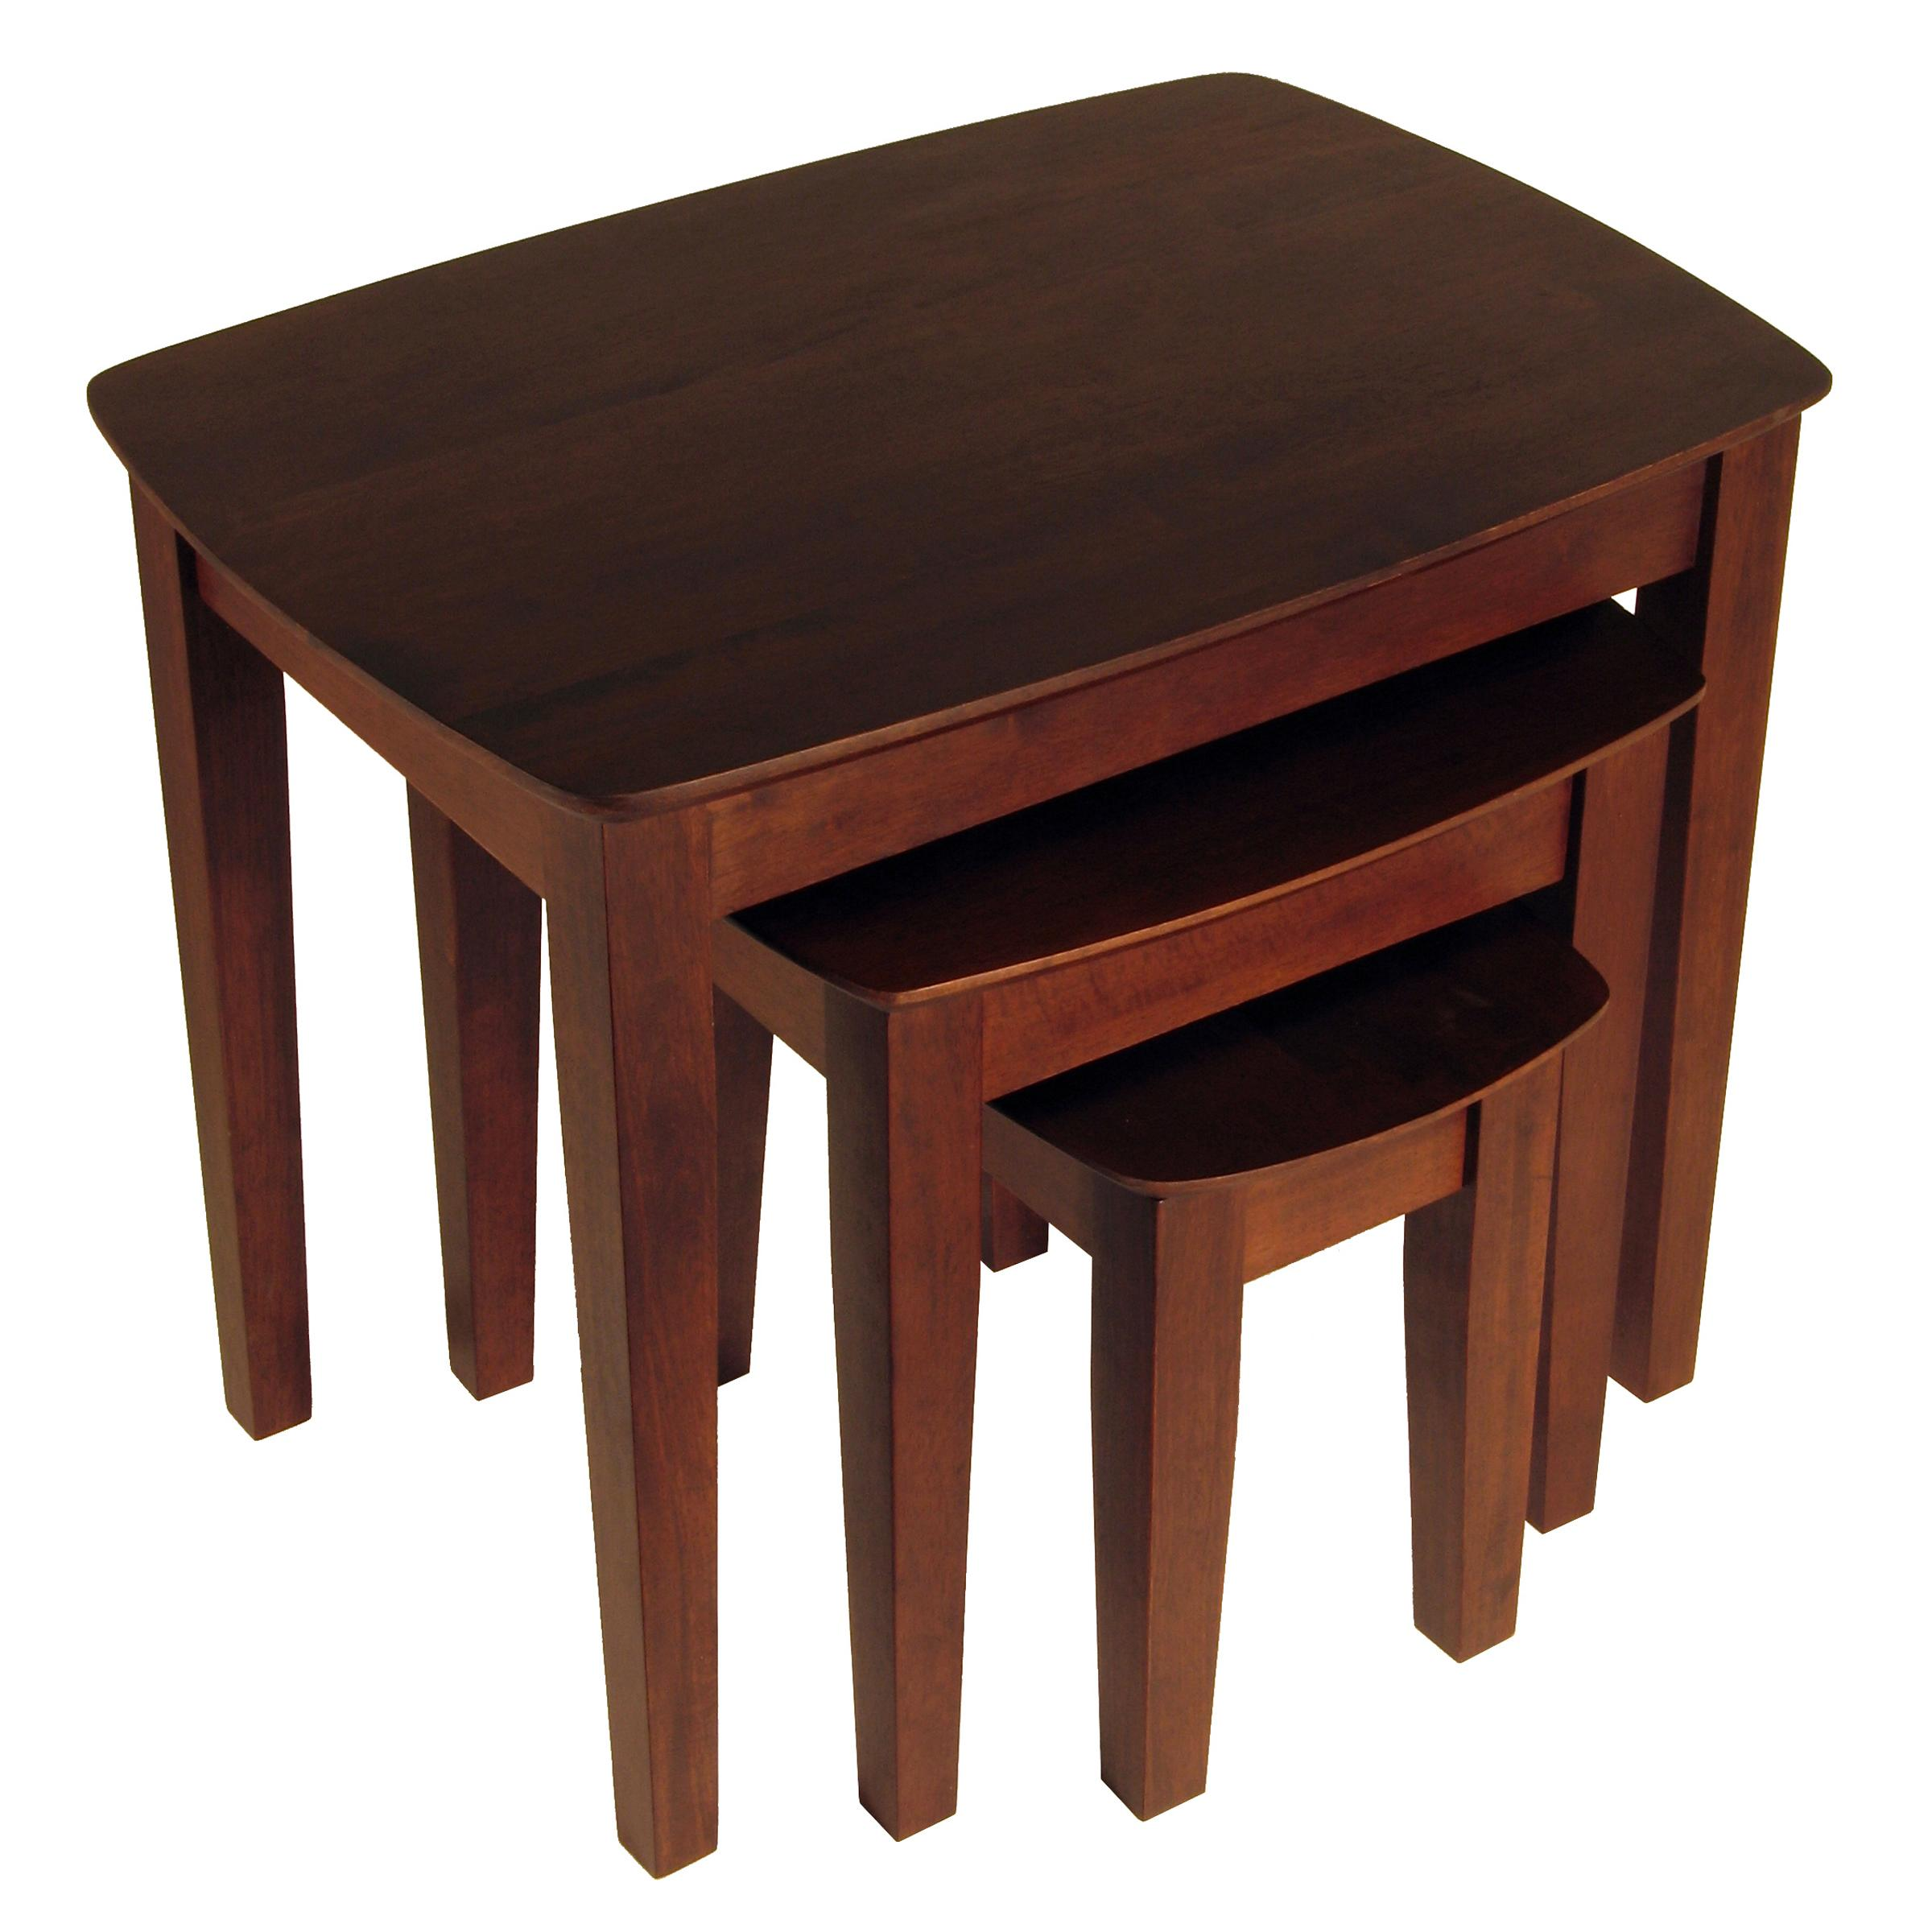 Amazon.com: Winsome Wood Nesting Table, Antique Walnut ...